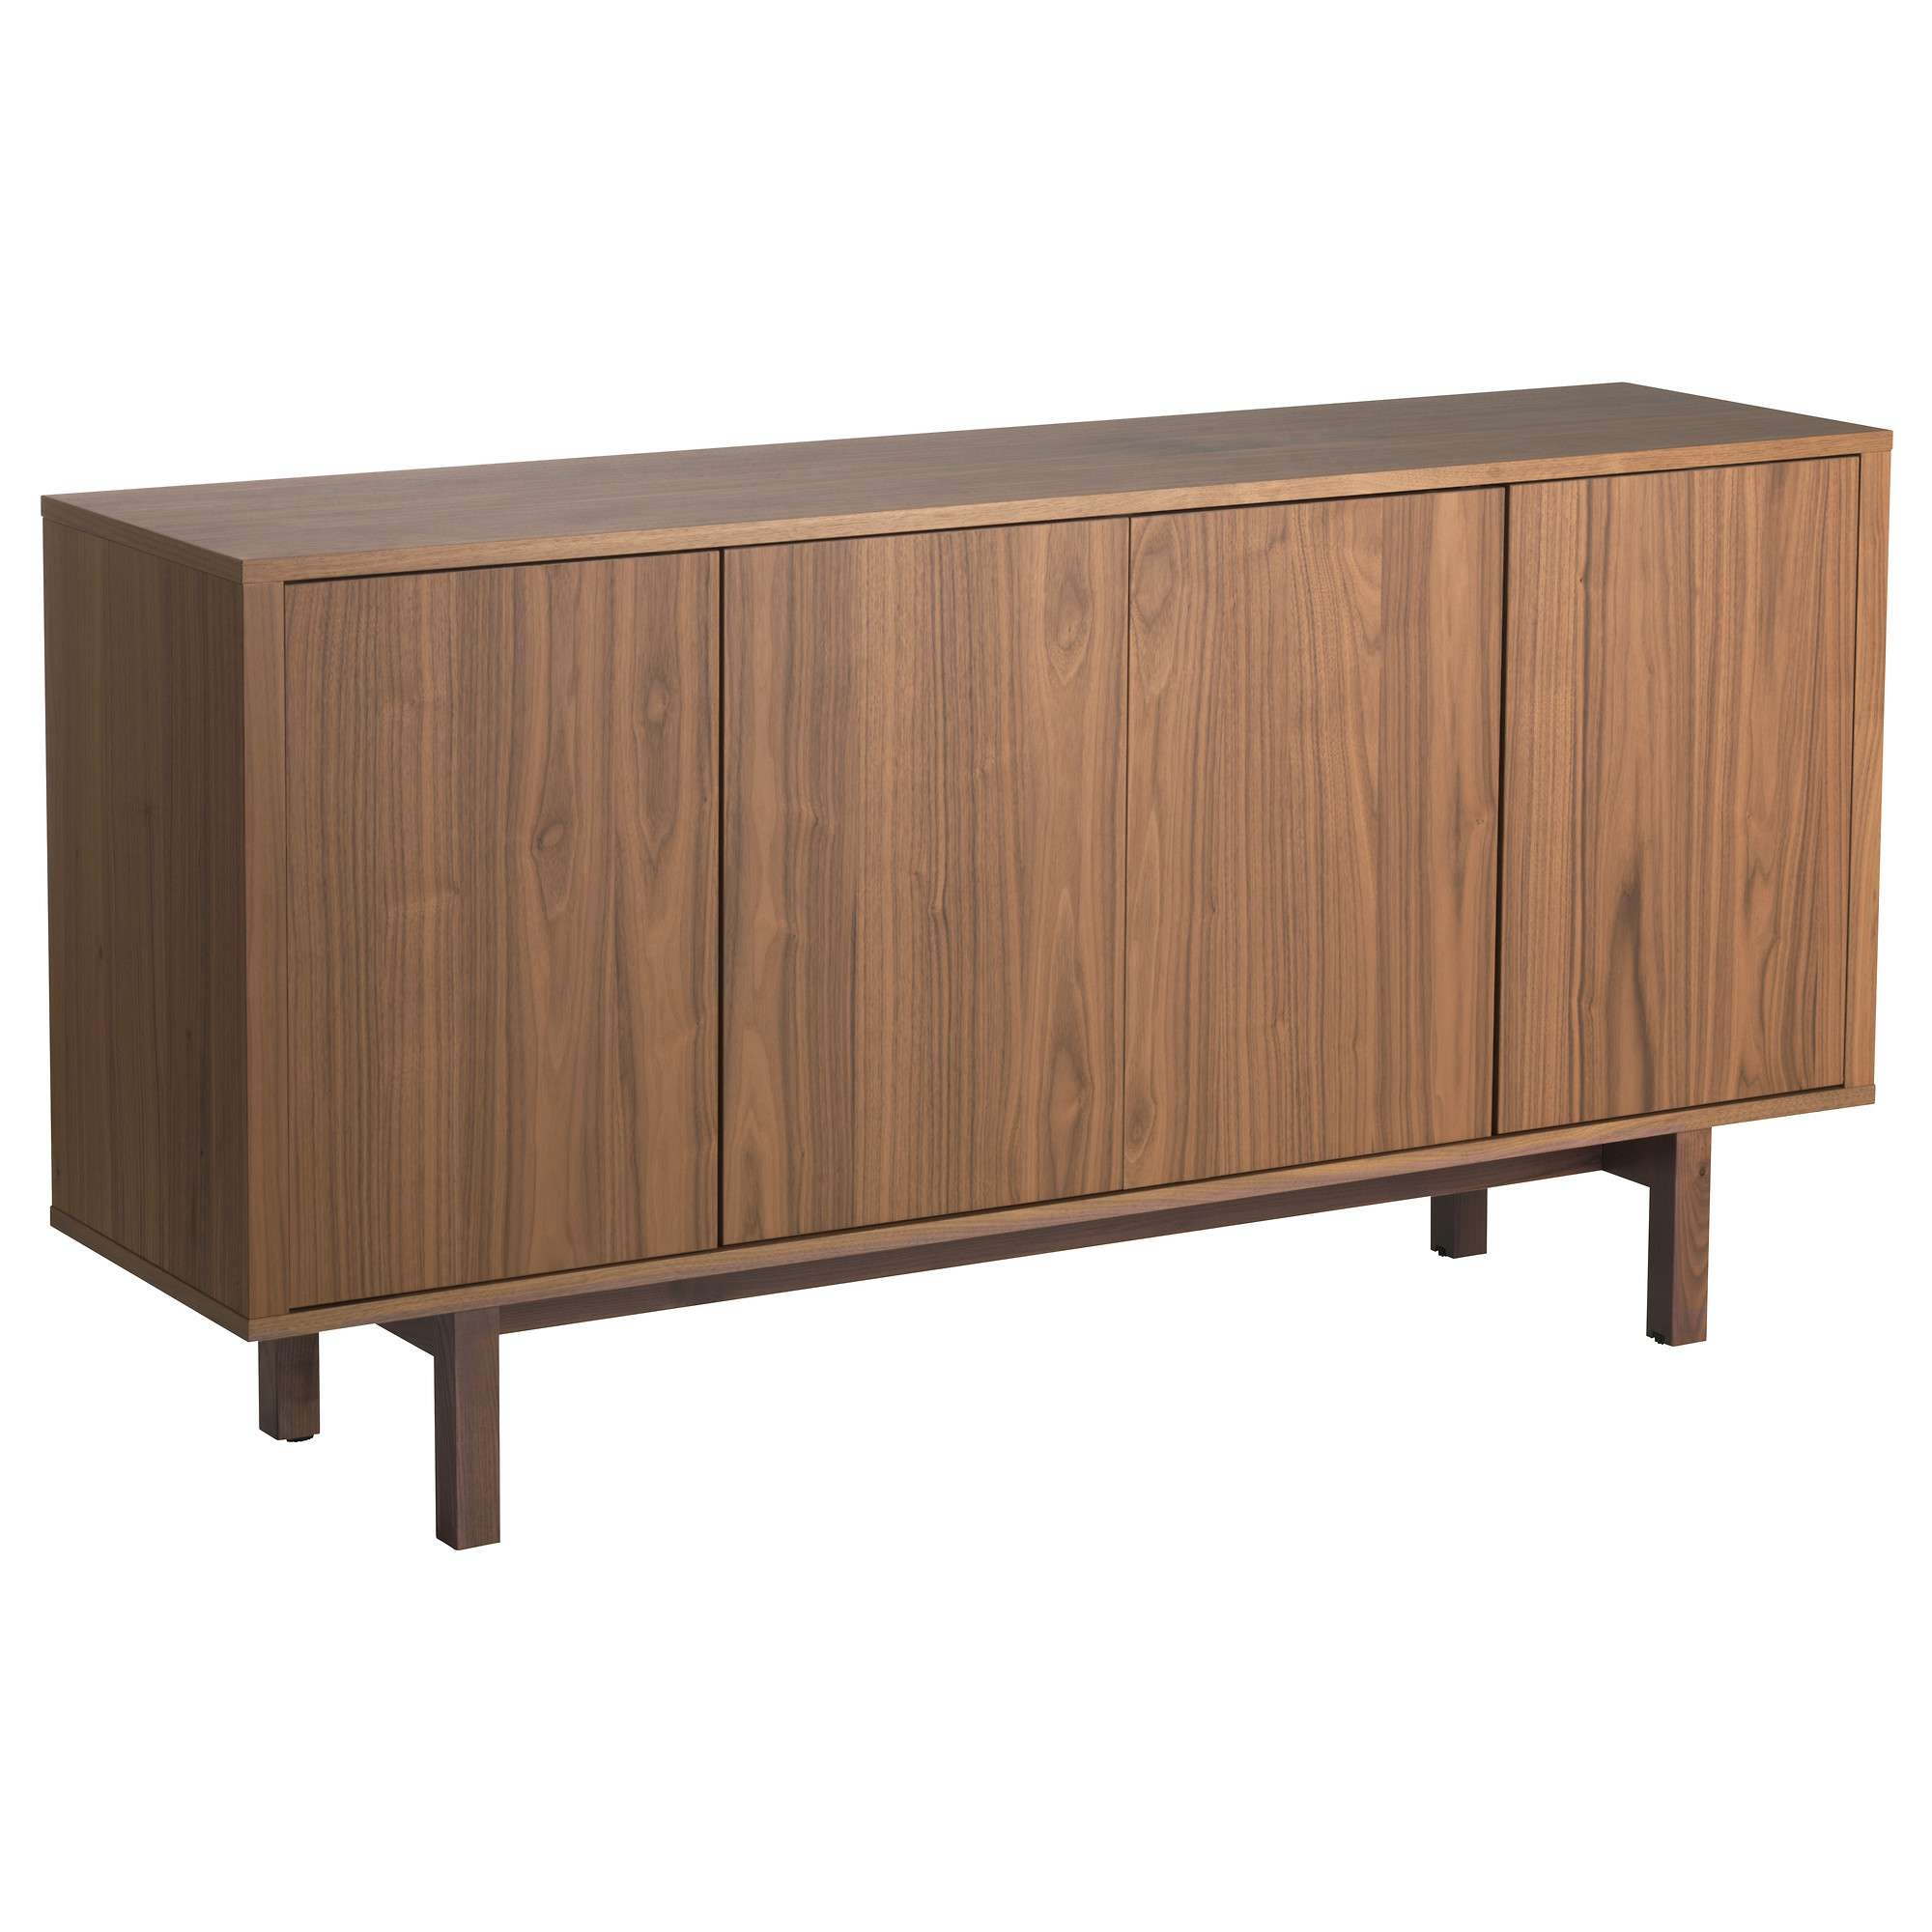 Stockholm Sideboard – Ikea With Regard To Hallway Sideboards (View 20 of 20)